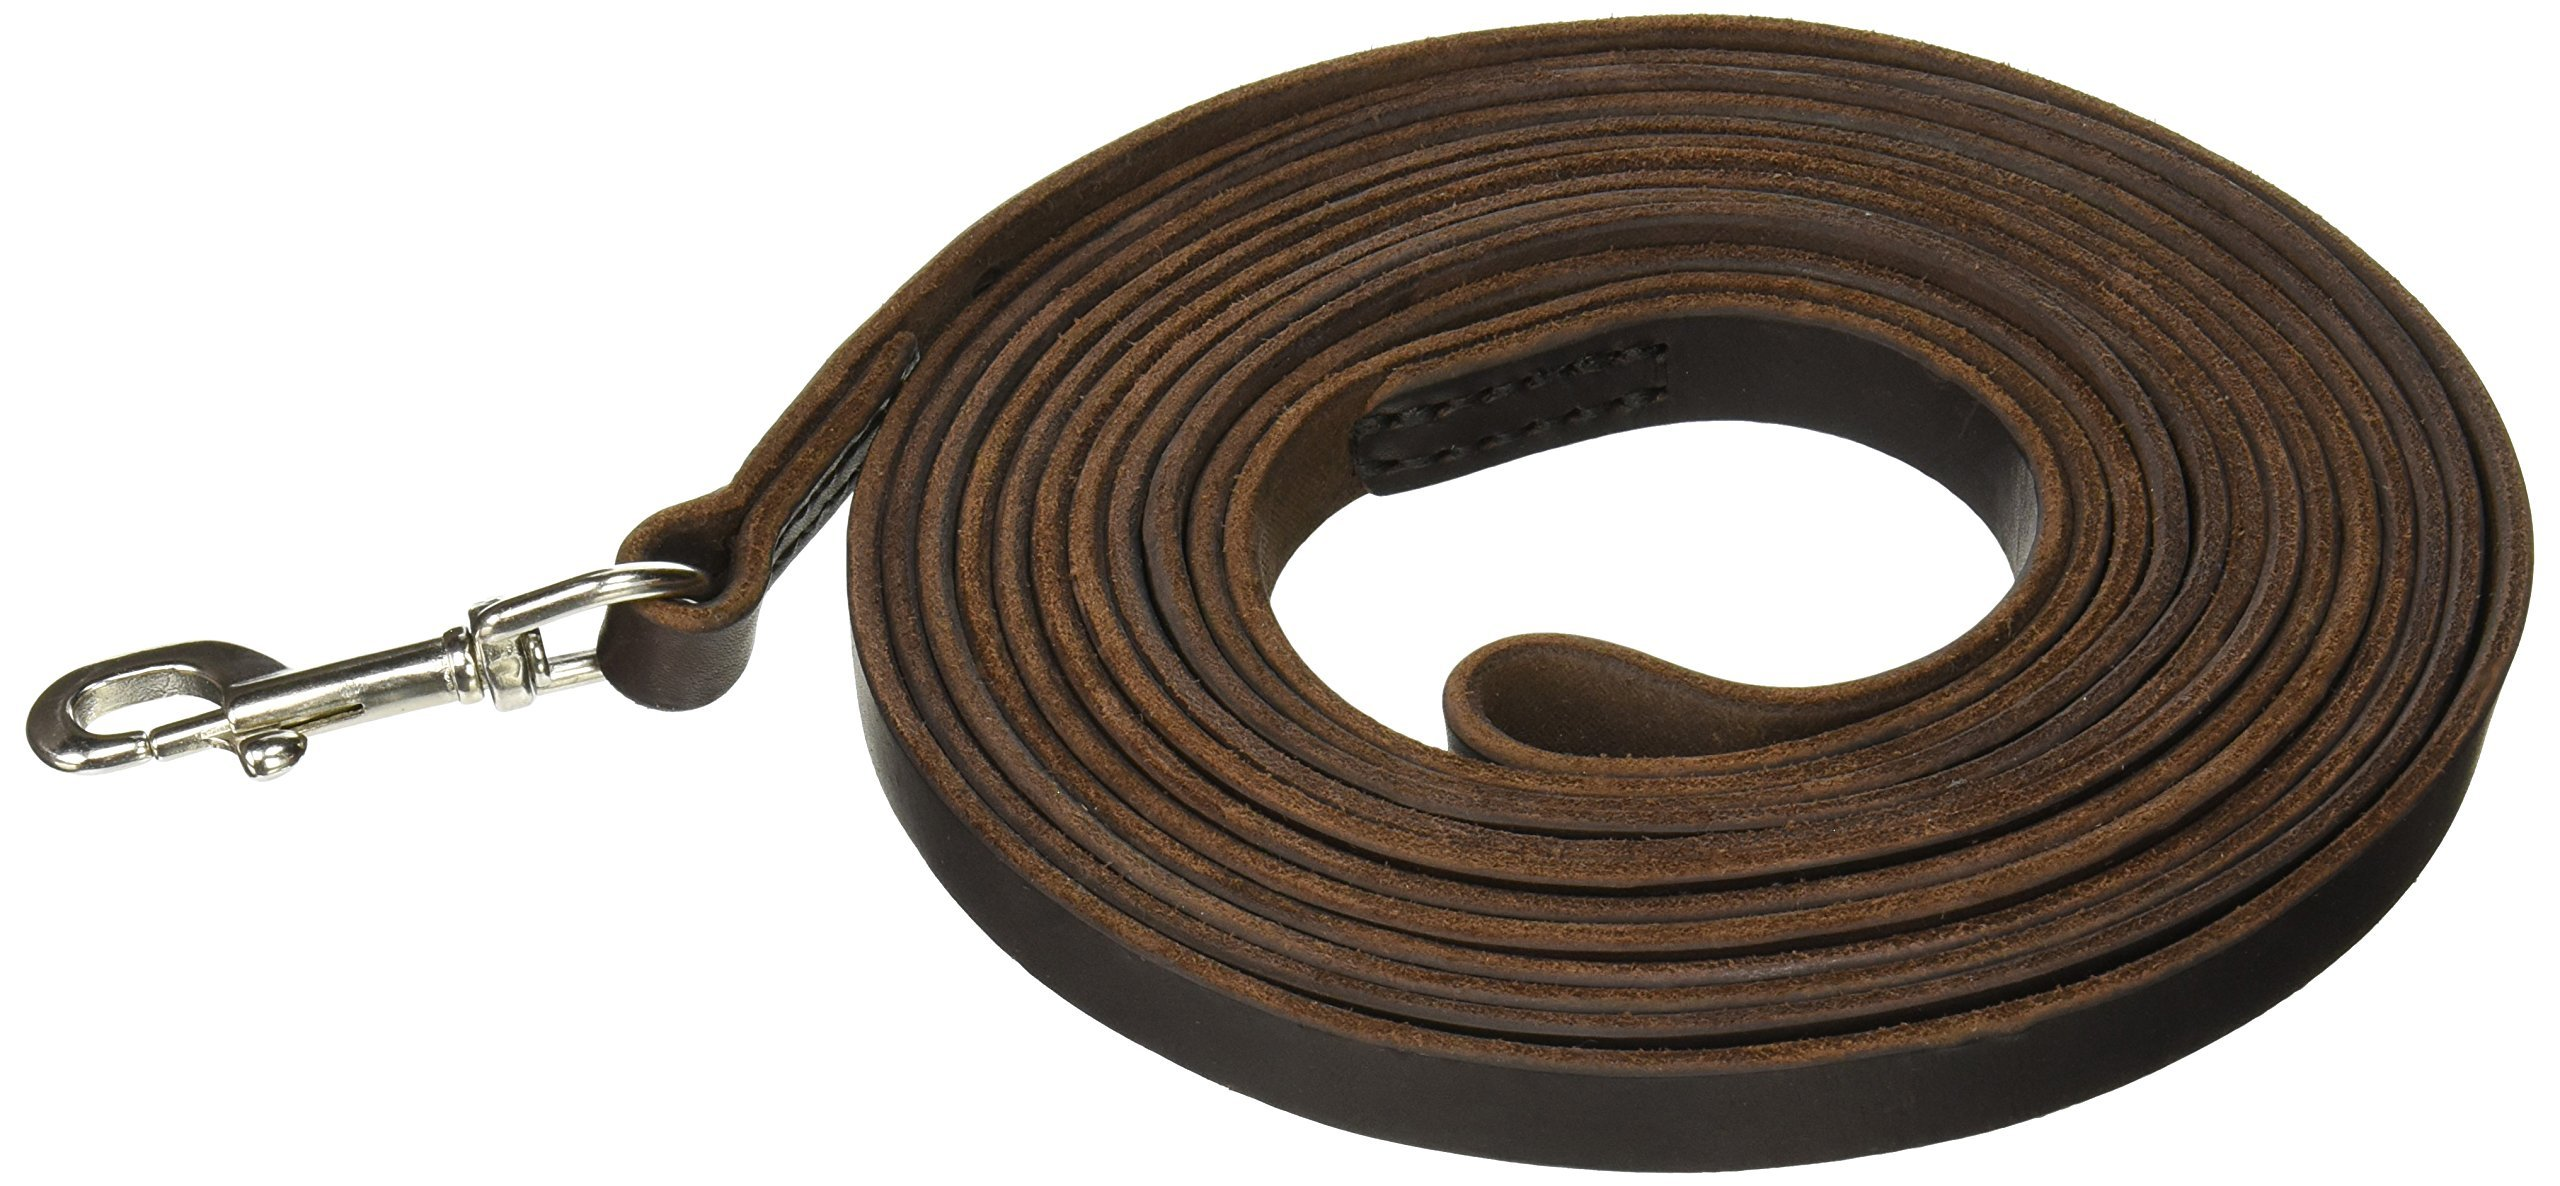 Dean and Tyler Stitched Track Dog Leash, Brown 20-Feet by 3/4-Inch Width With Handle And Stainless Steel Hardware.